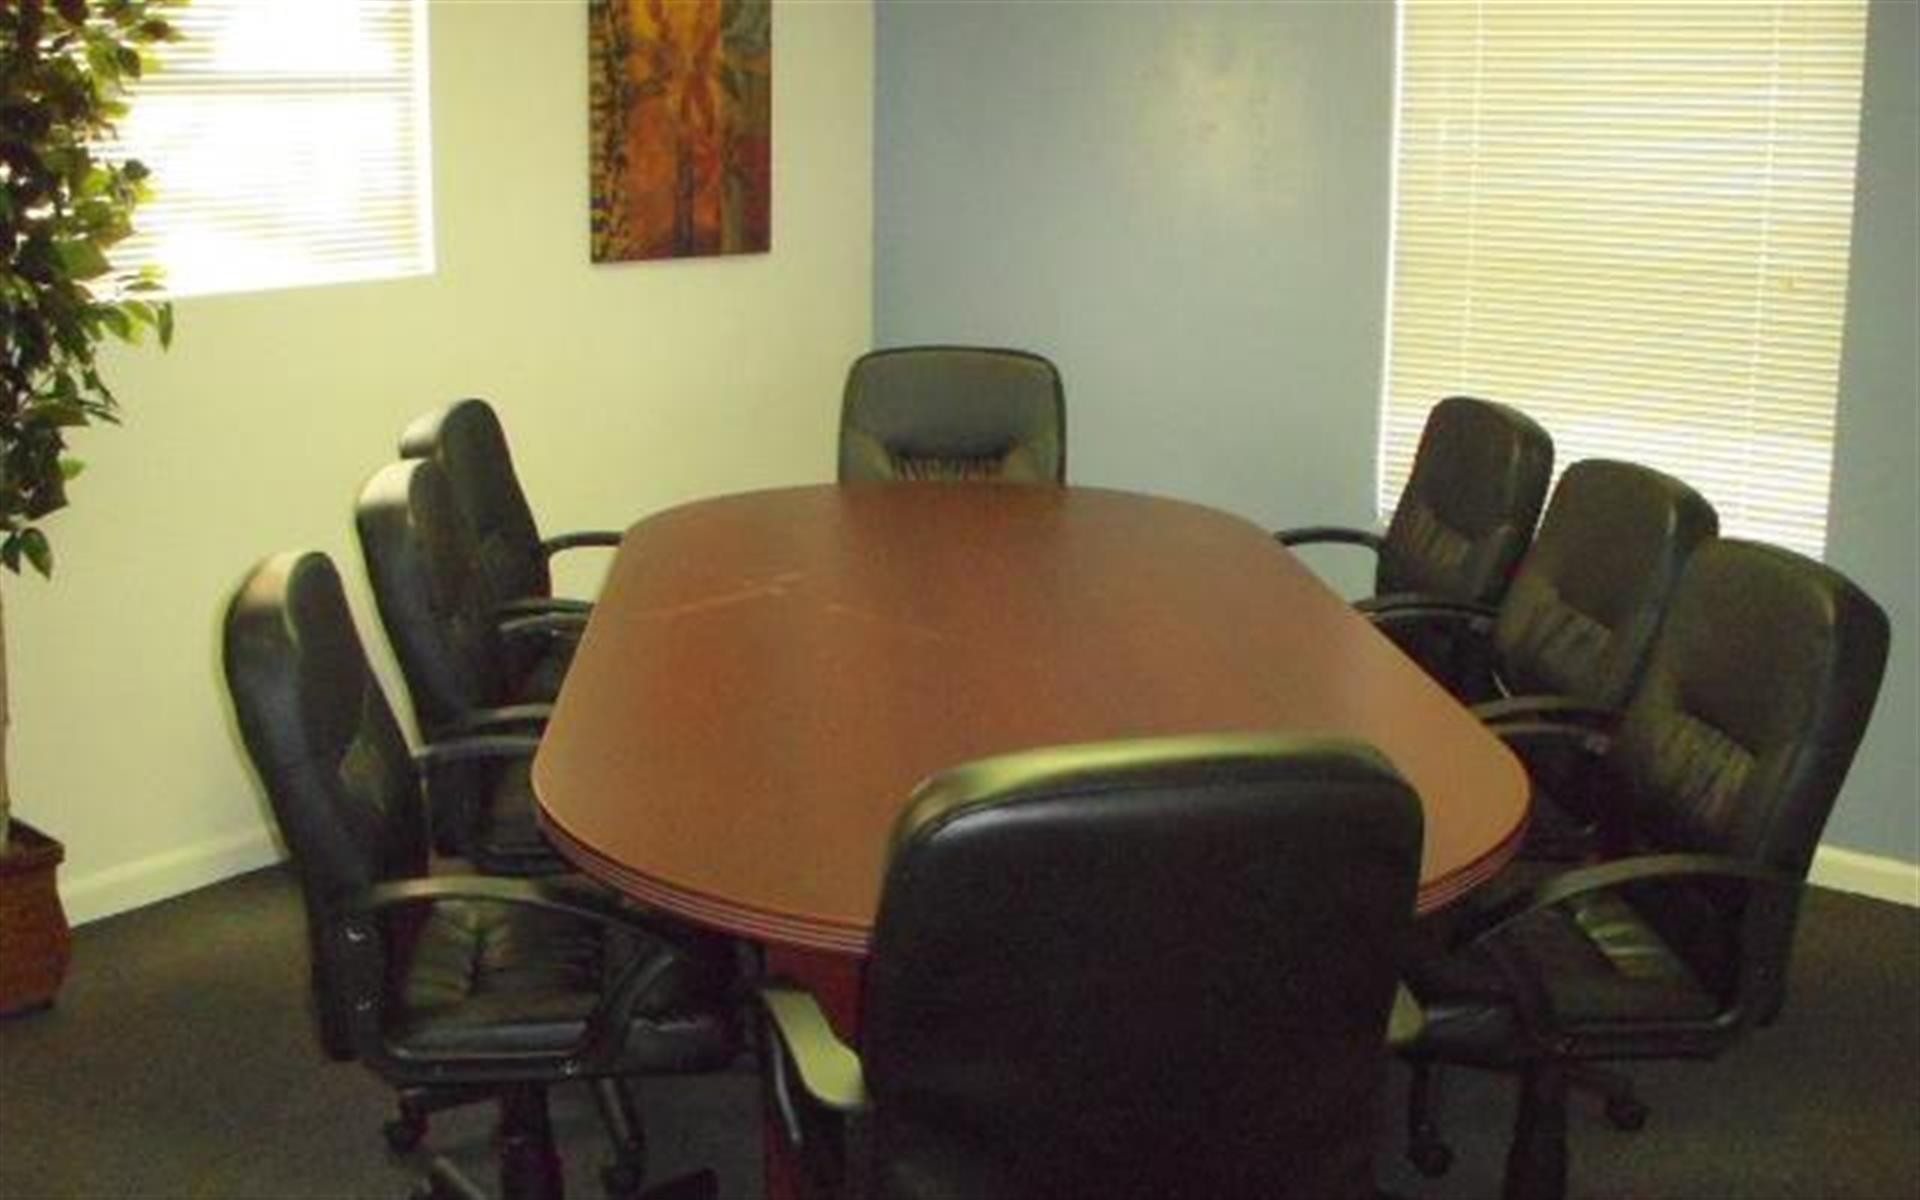 Plaza Executive Suites Mesa Office Plaza - Arizona Conference Room